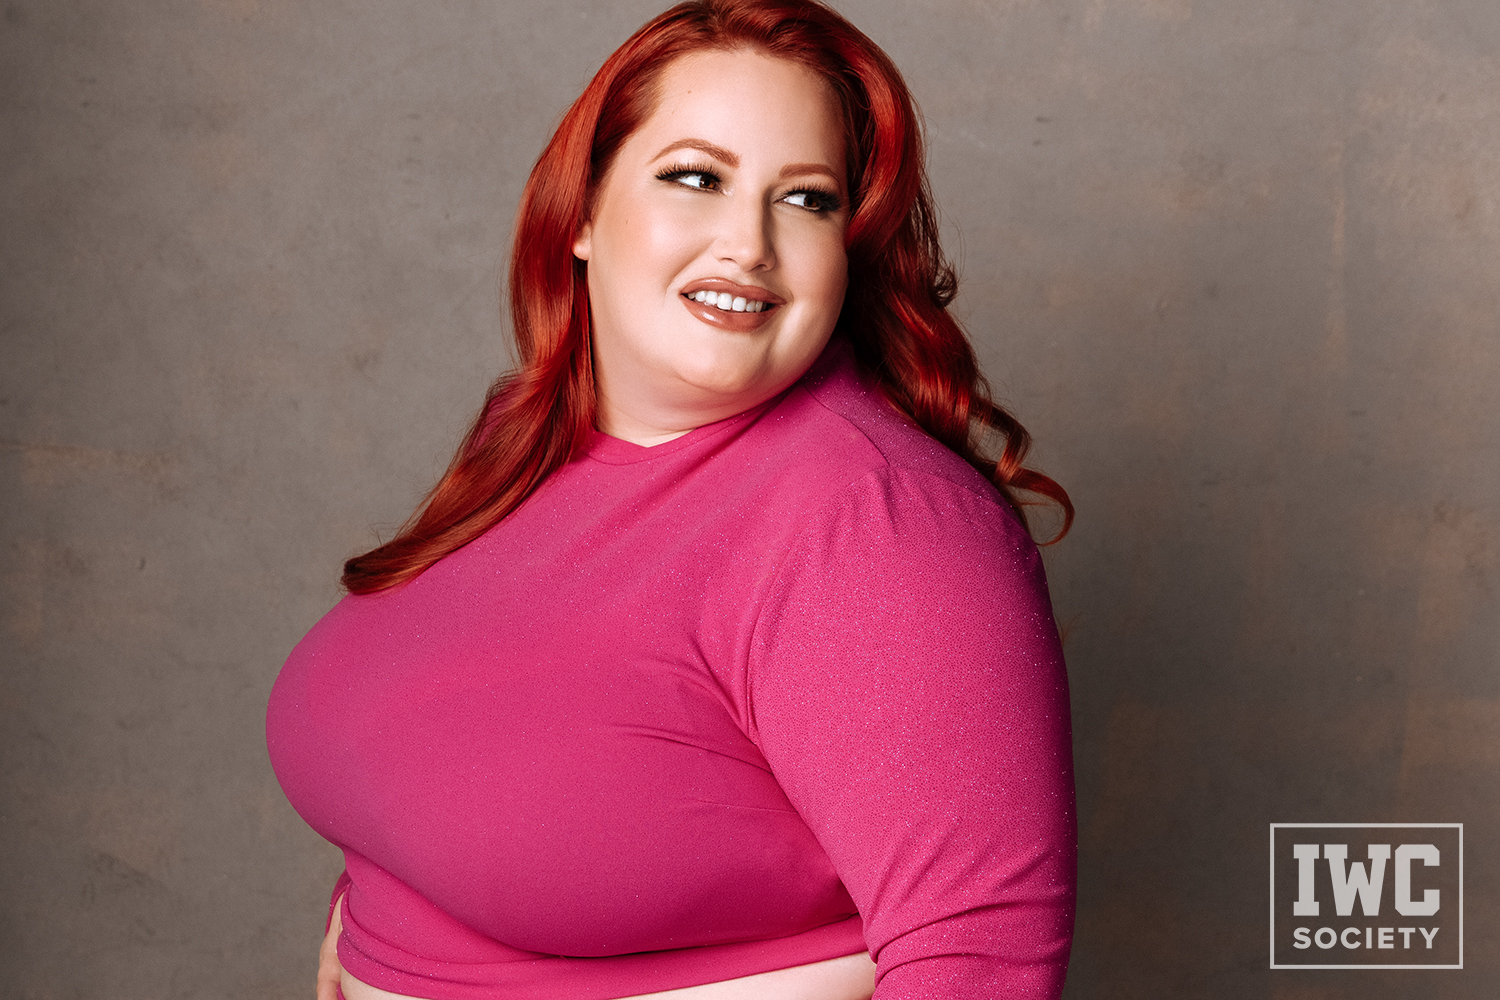 Eliza Allure BBW redhead glamour shot staring over shoulder with slight smile on face